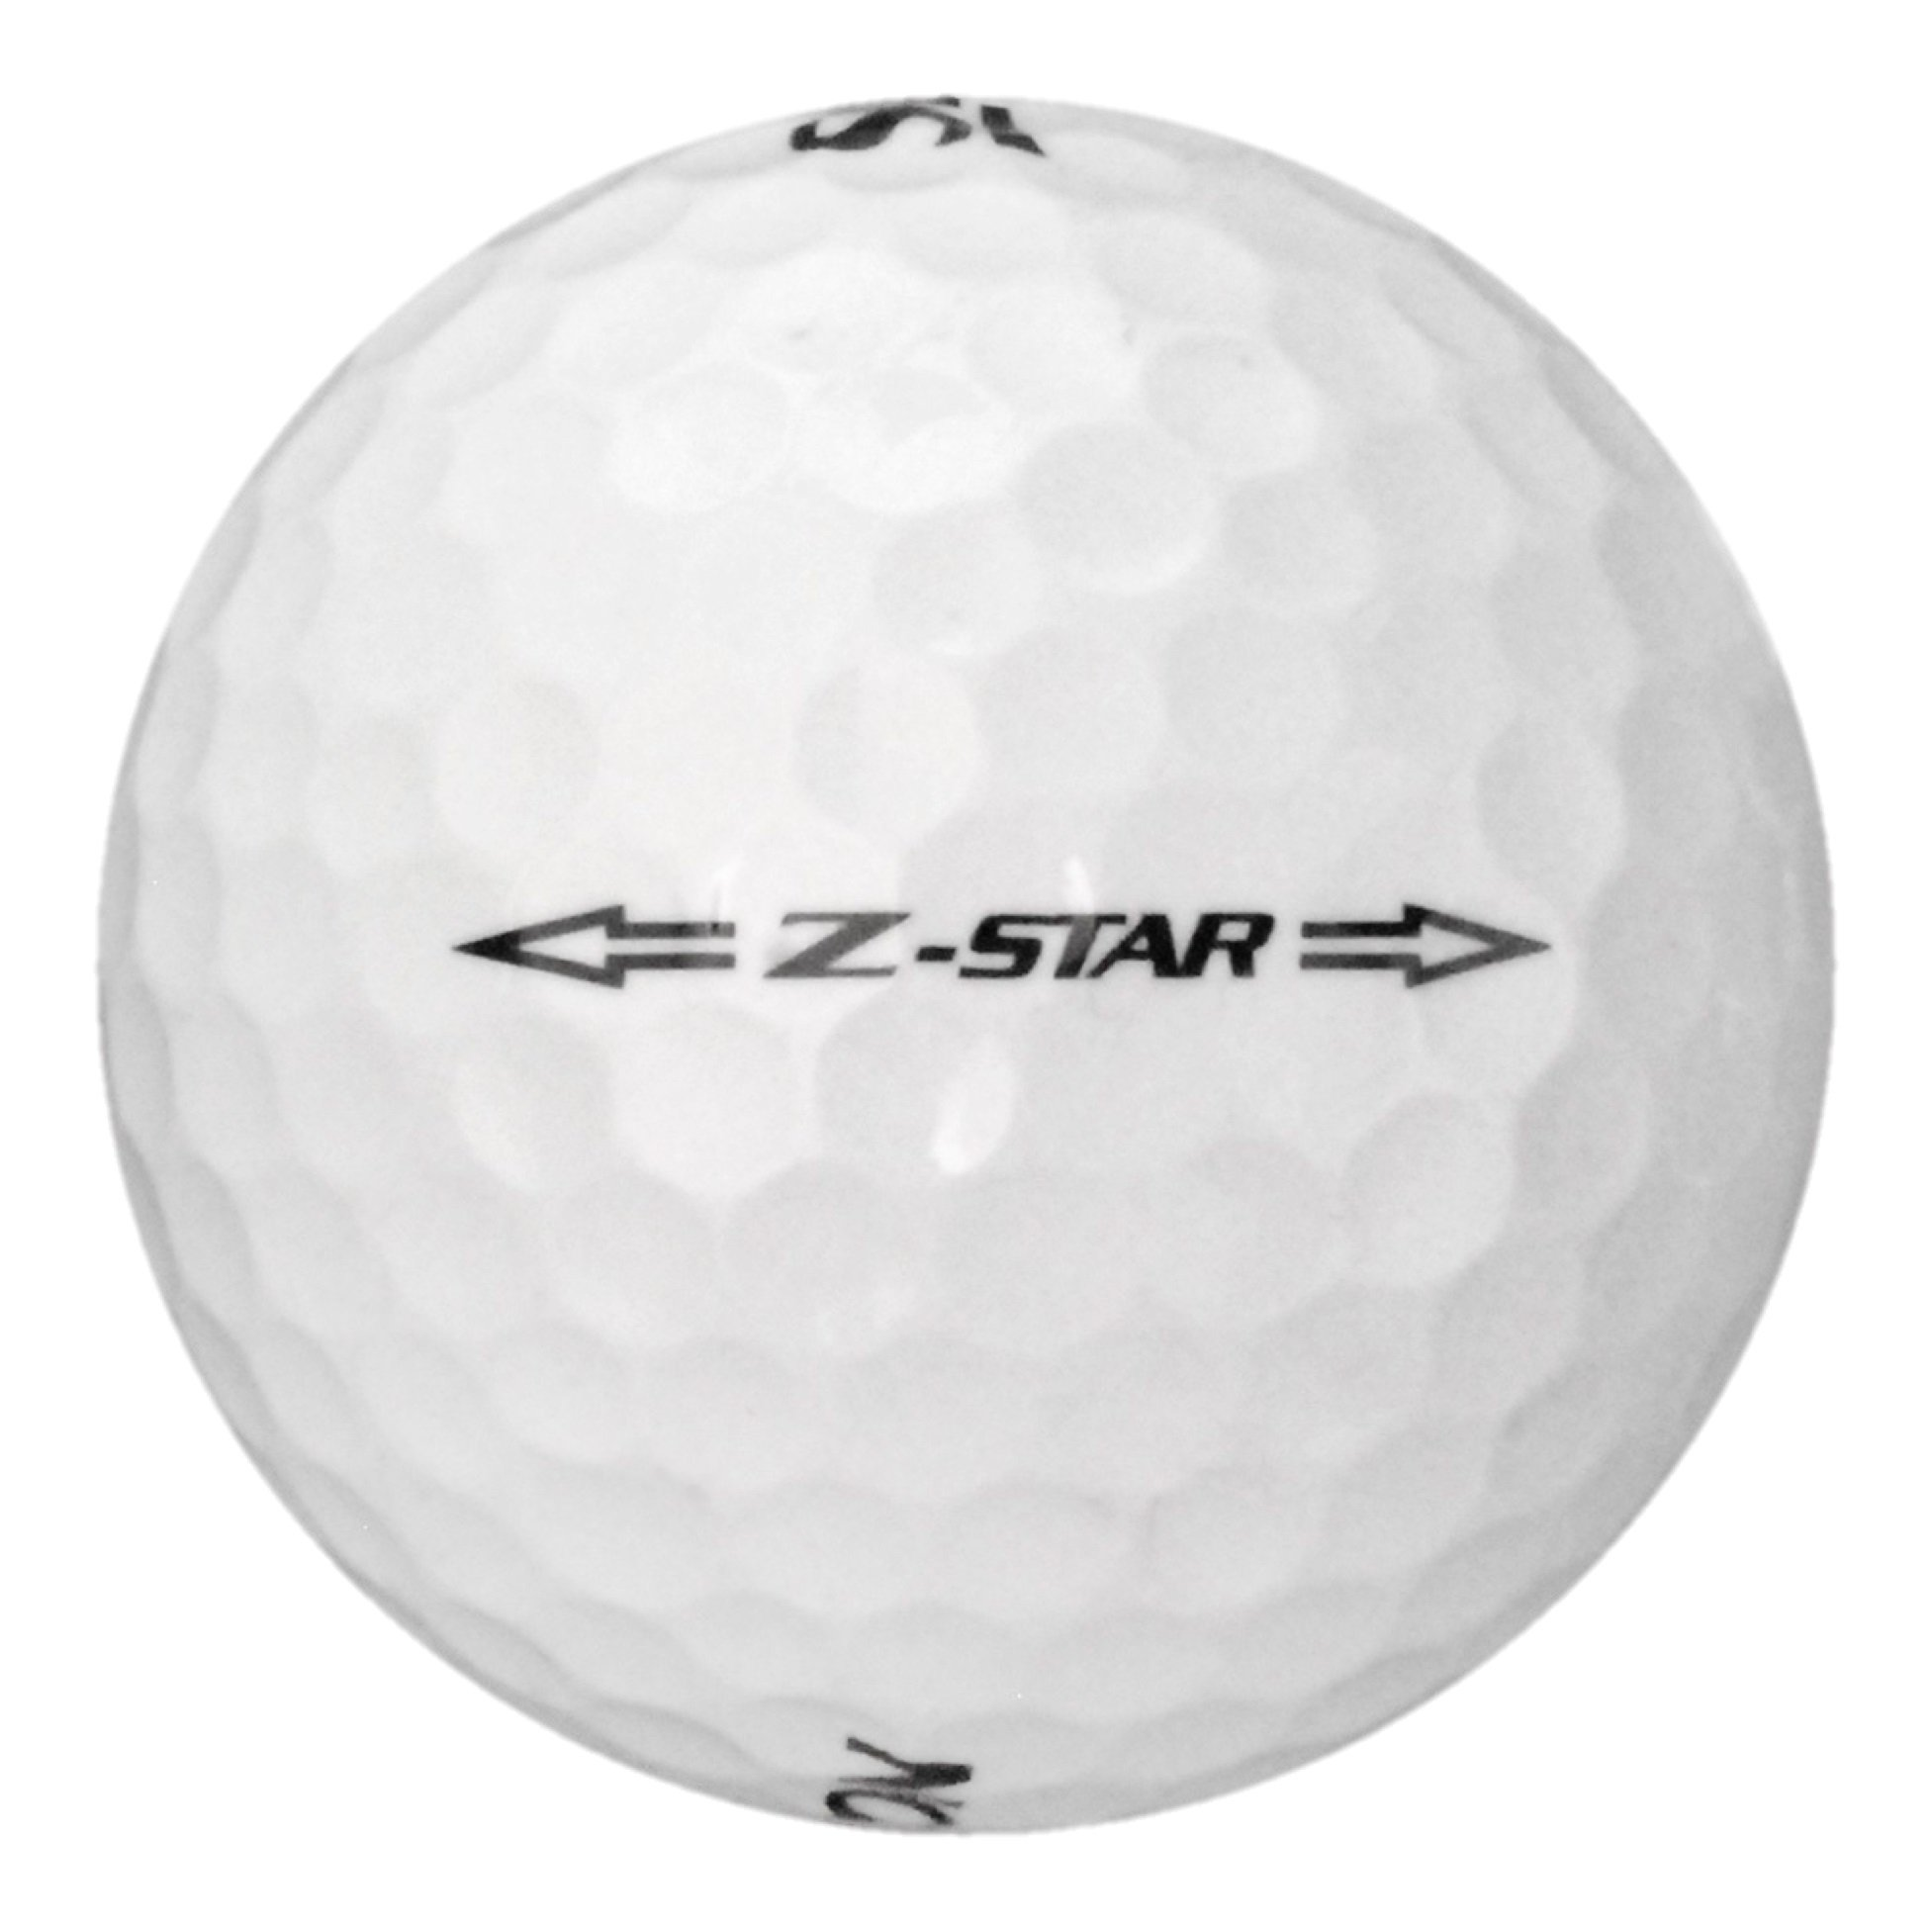 120 Srixon Z-Star - Value (AAA) Grade - Recycled (Used) Golf Balls